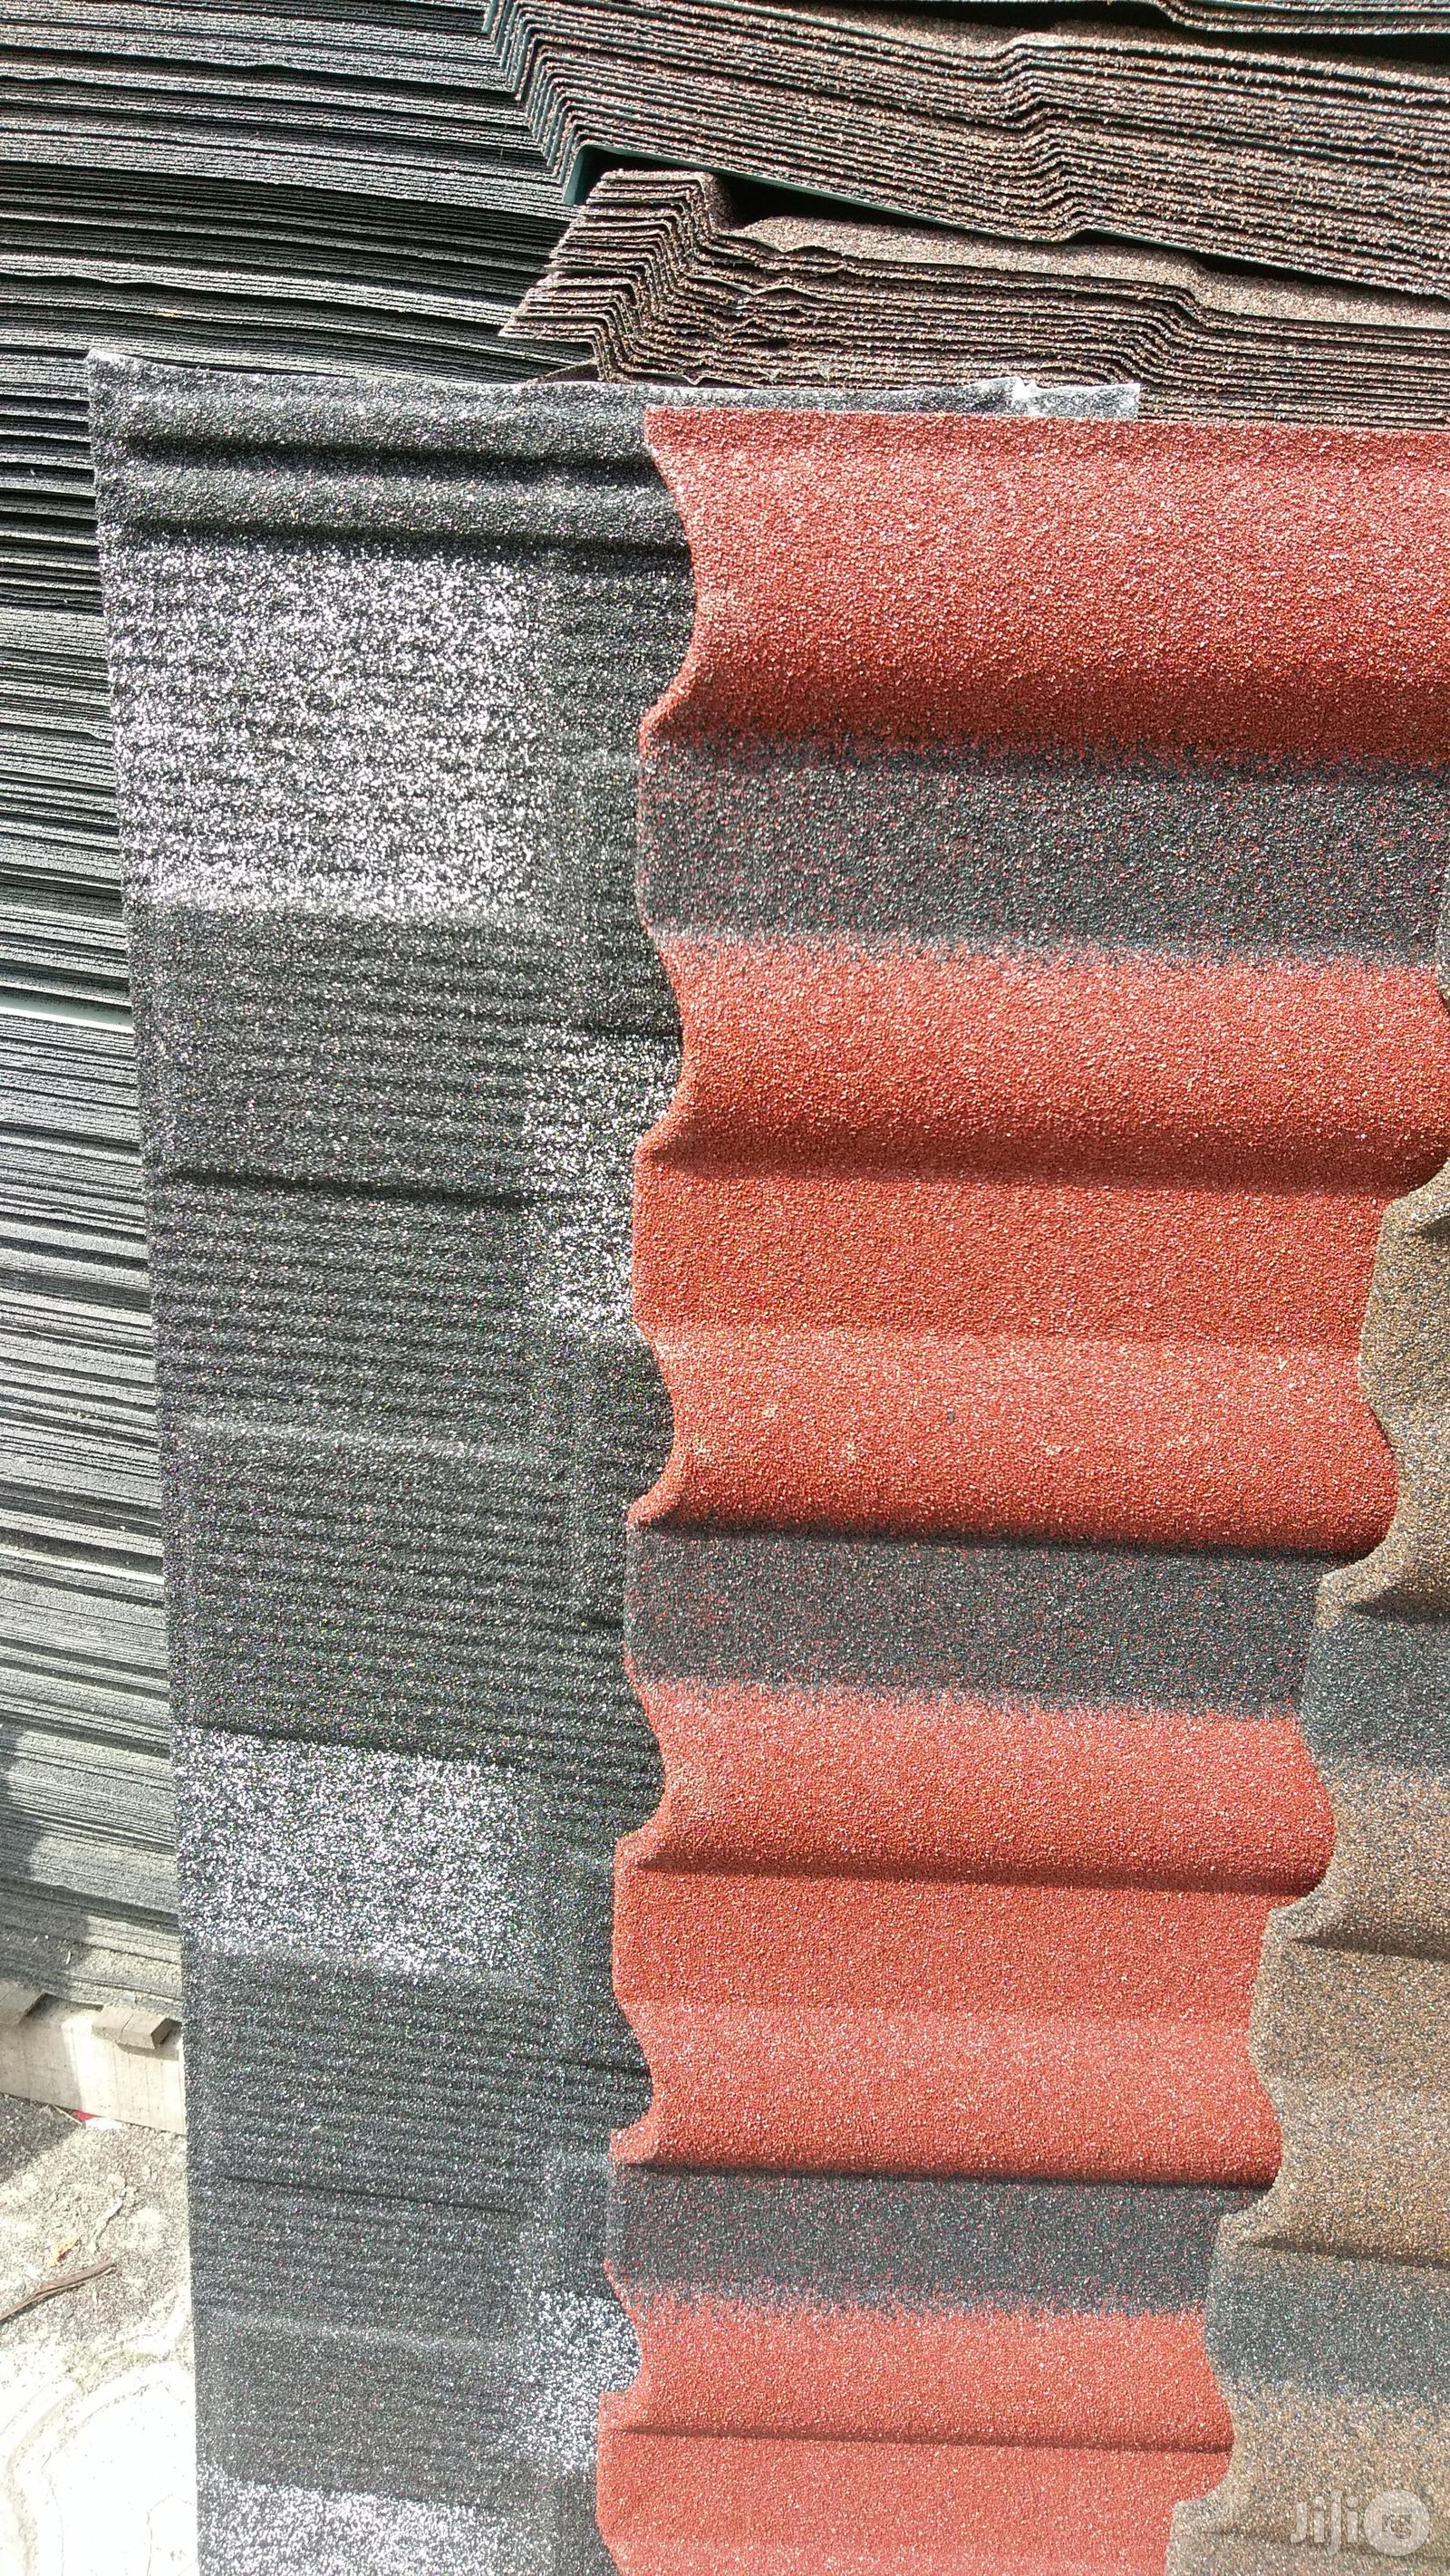 Wichtech Gerard (Milano Red And Black) Stone Coated Roofing Sheet